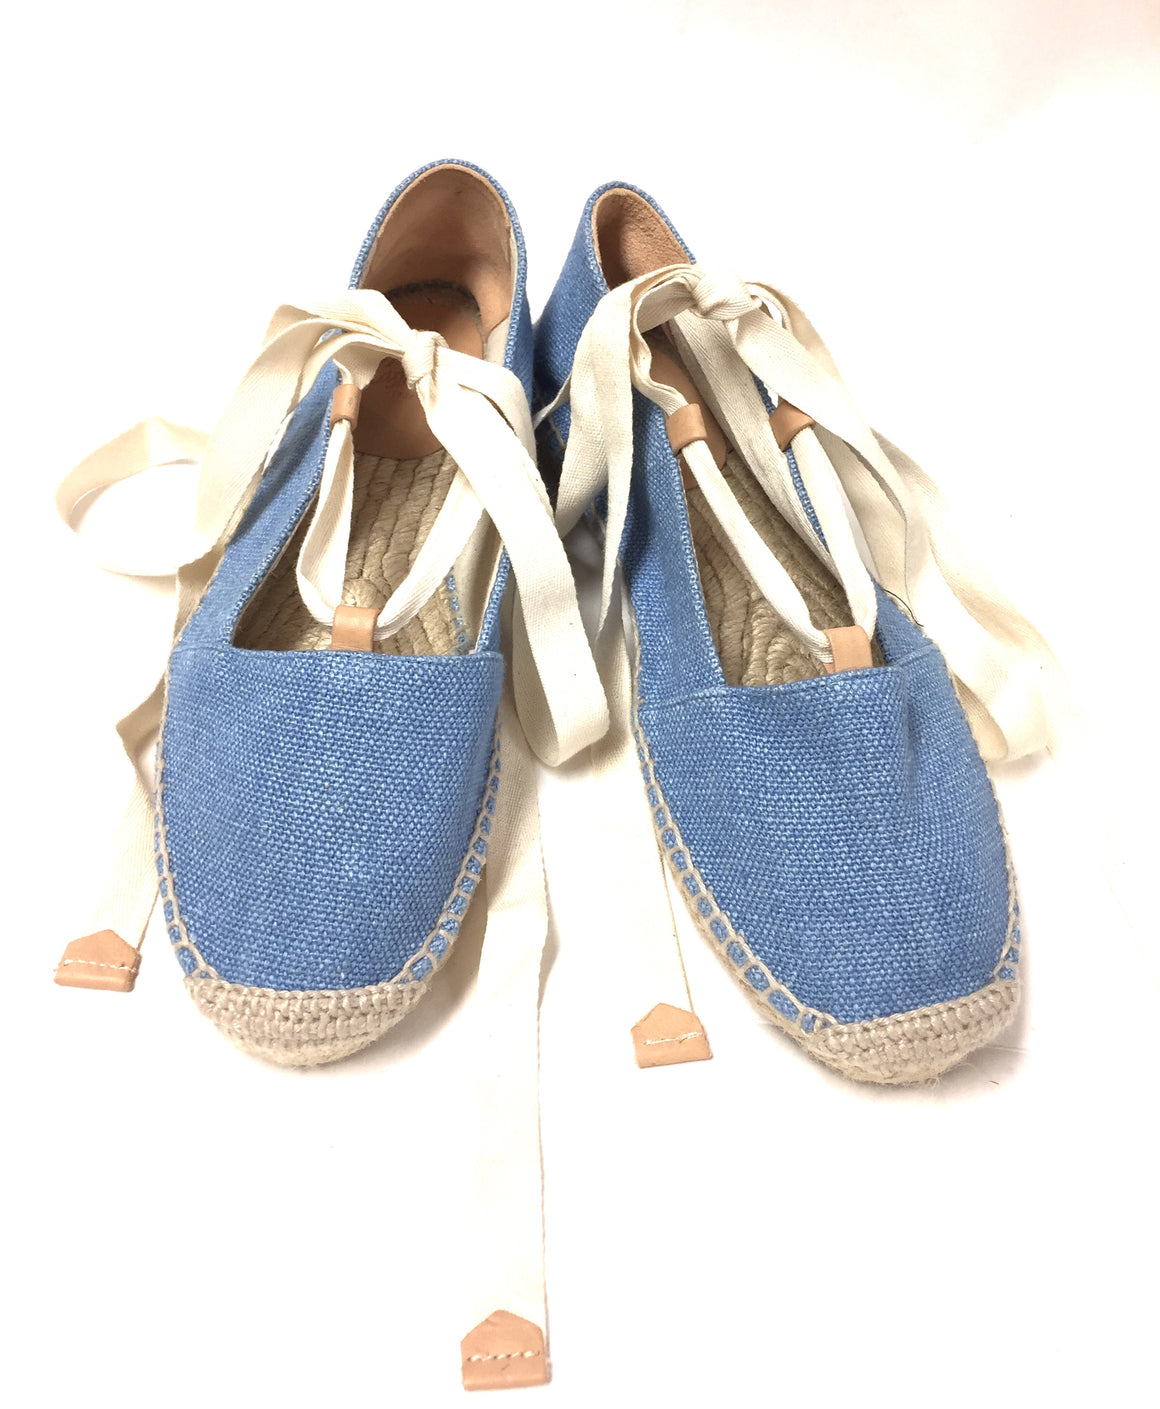 bisbiz.com CASTANER Sky-Blue Canvas Flat Ribbon Tie-Up Espadrilles Sandals Size: 38 / 8 - Bis Luxury Resale